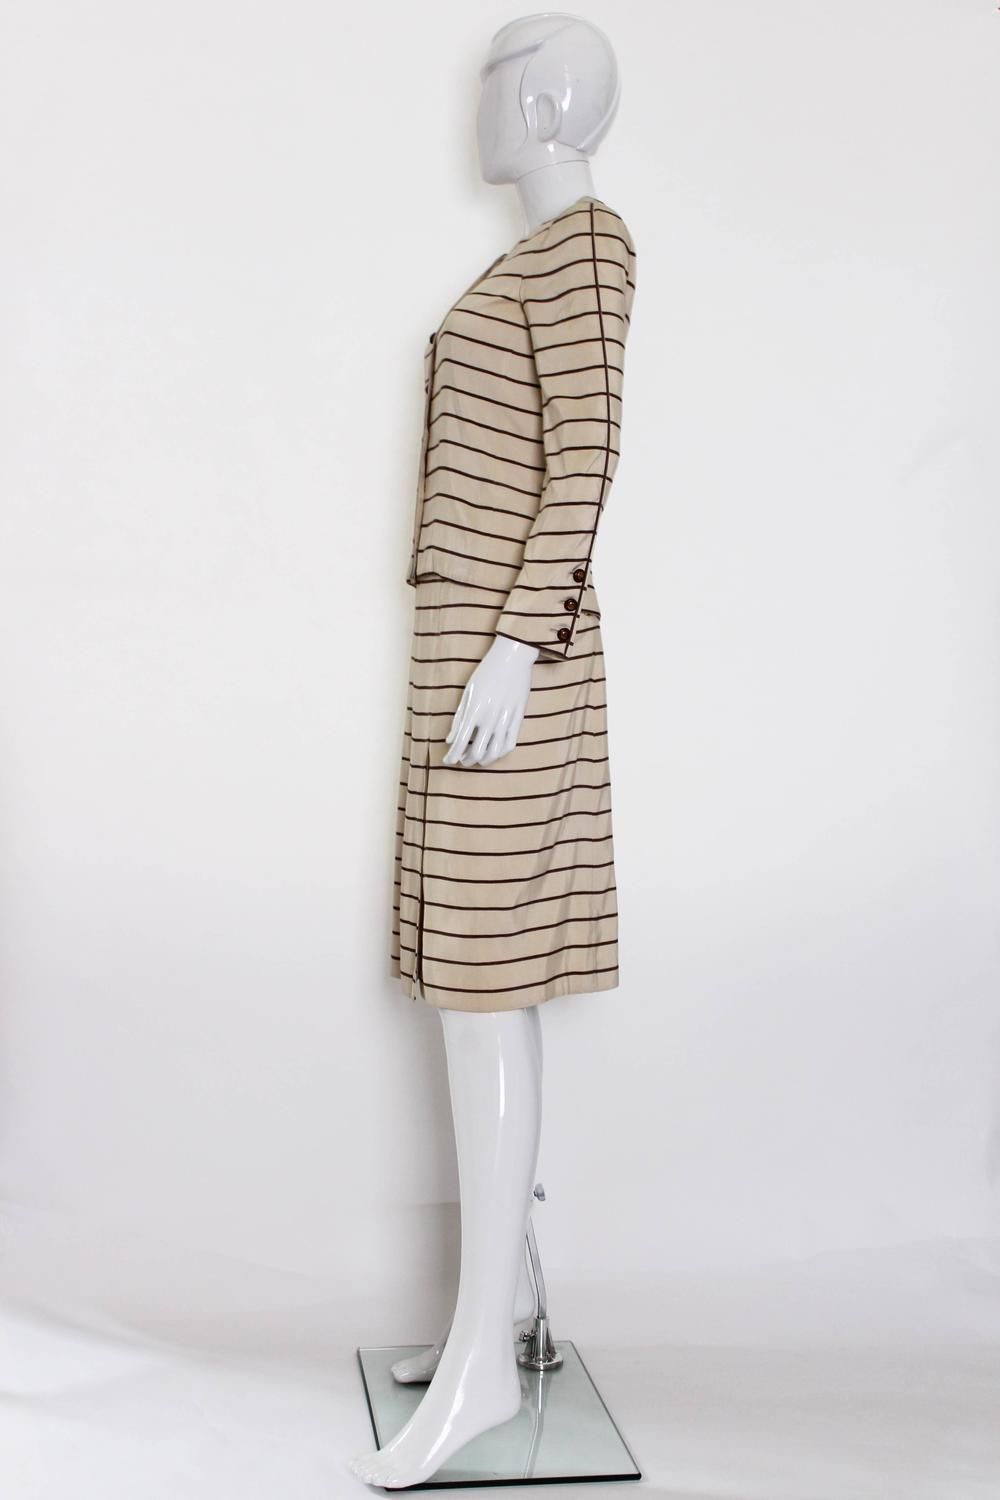 Chanel haute couture skirt suit 1974 for sale at 1stdibs for Haute couture sale